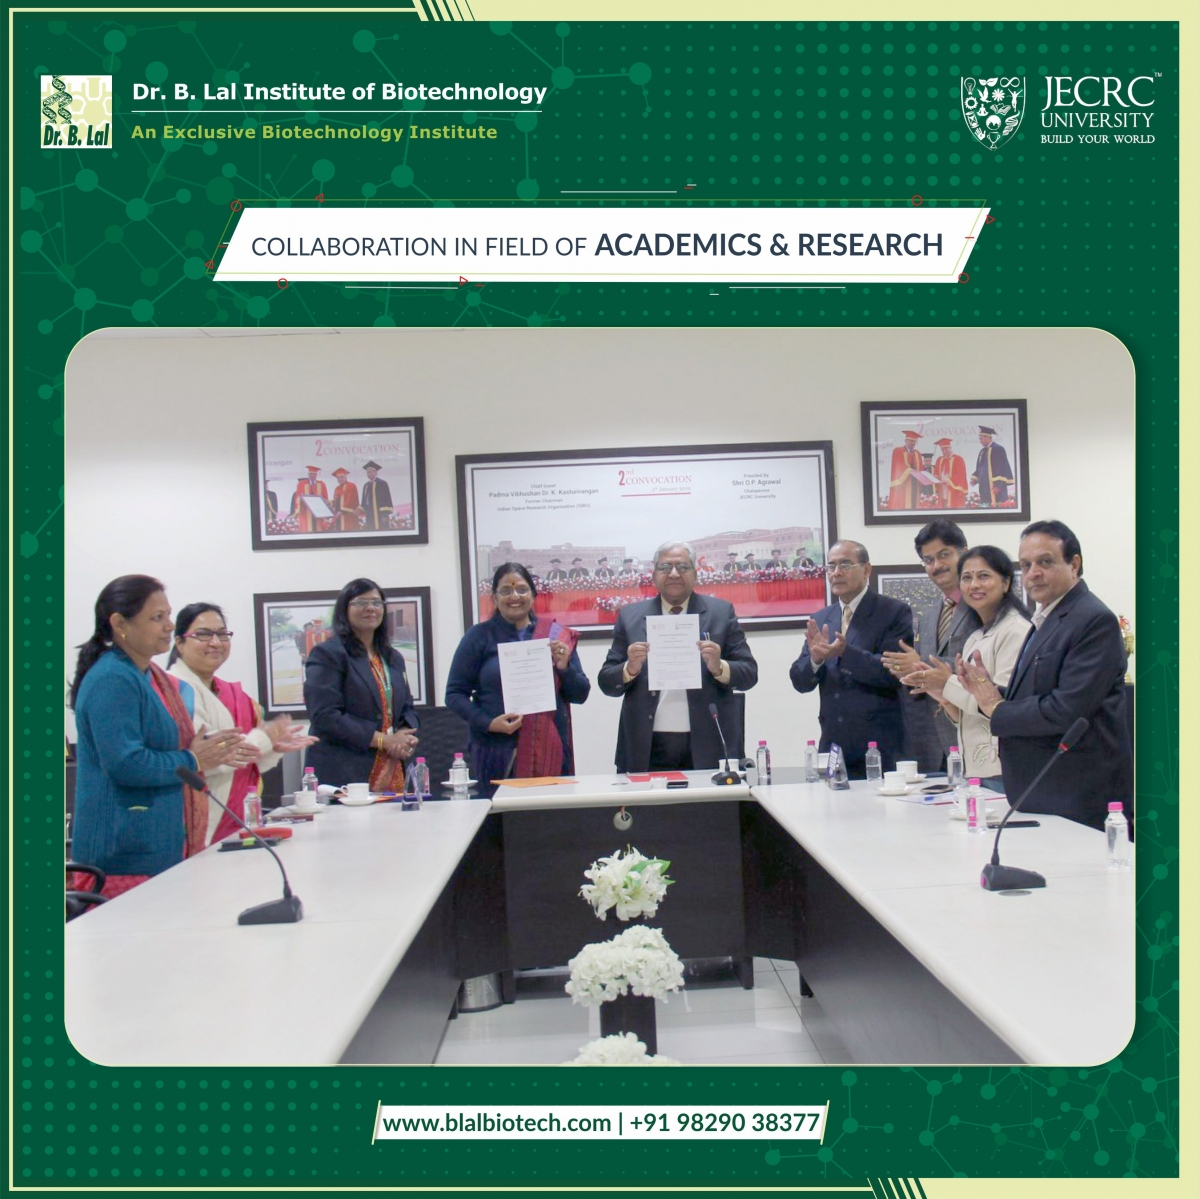 JECRC & BIBT | Collaboration for Academics and Research